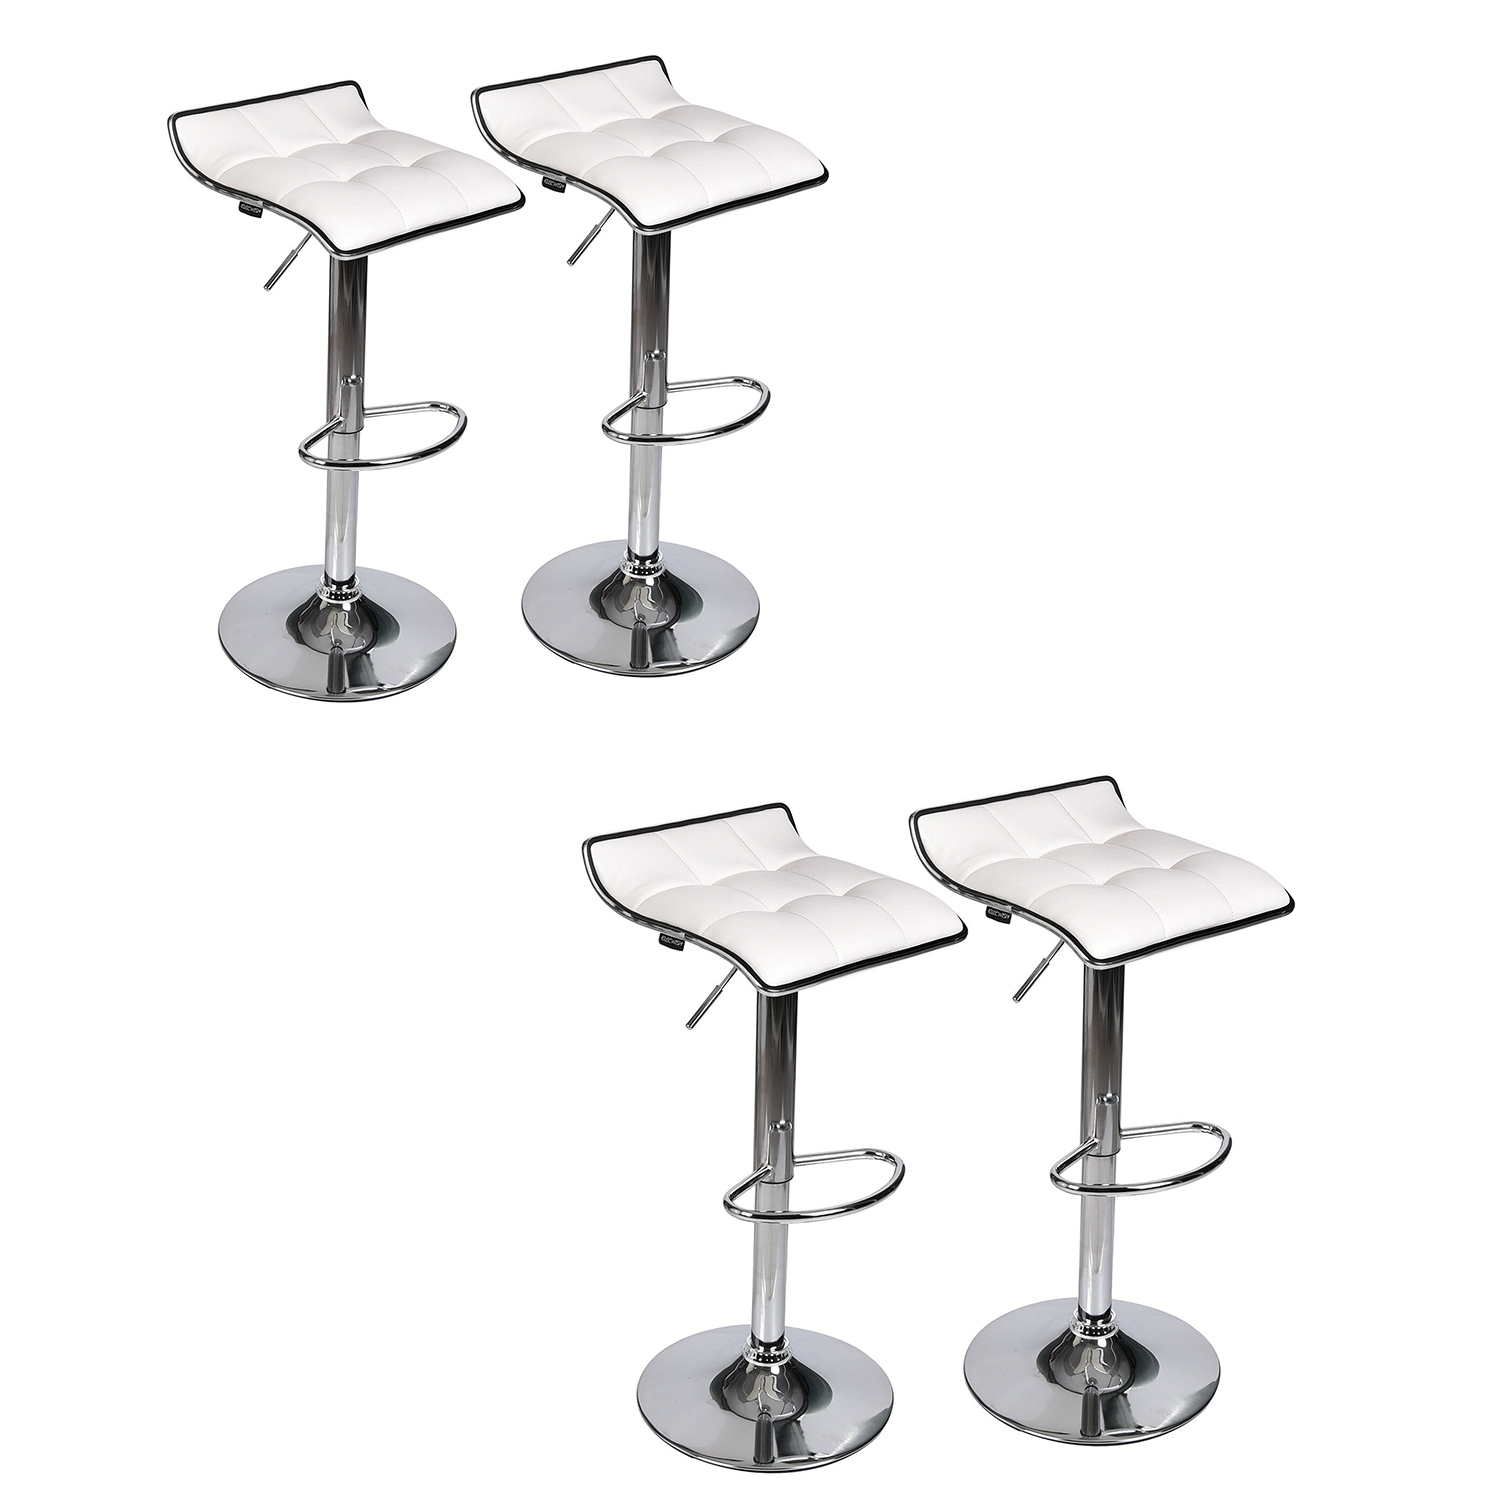 Set Of 4 White Bar Stool Chair  Pu Leather Hydraulic Swivel Pub Kitchen Dining Chair